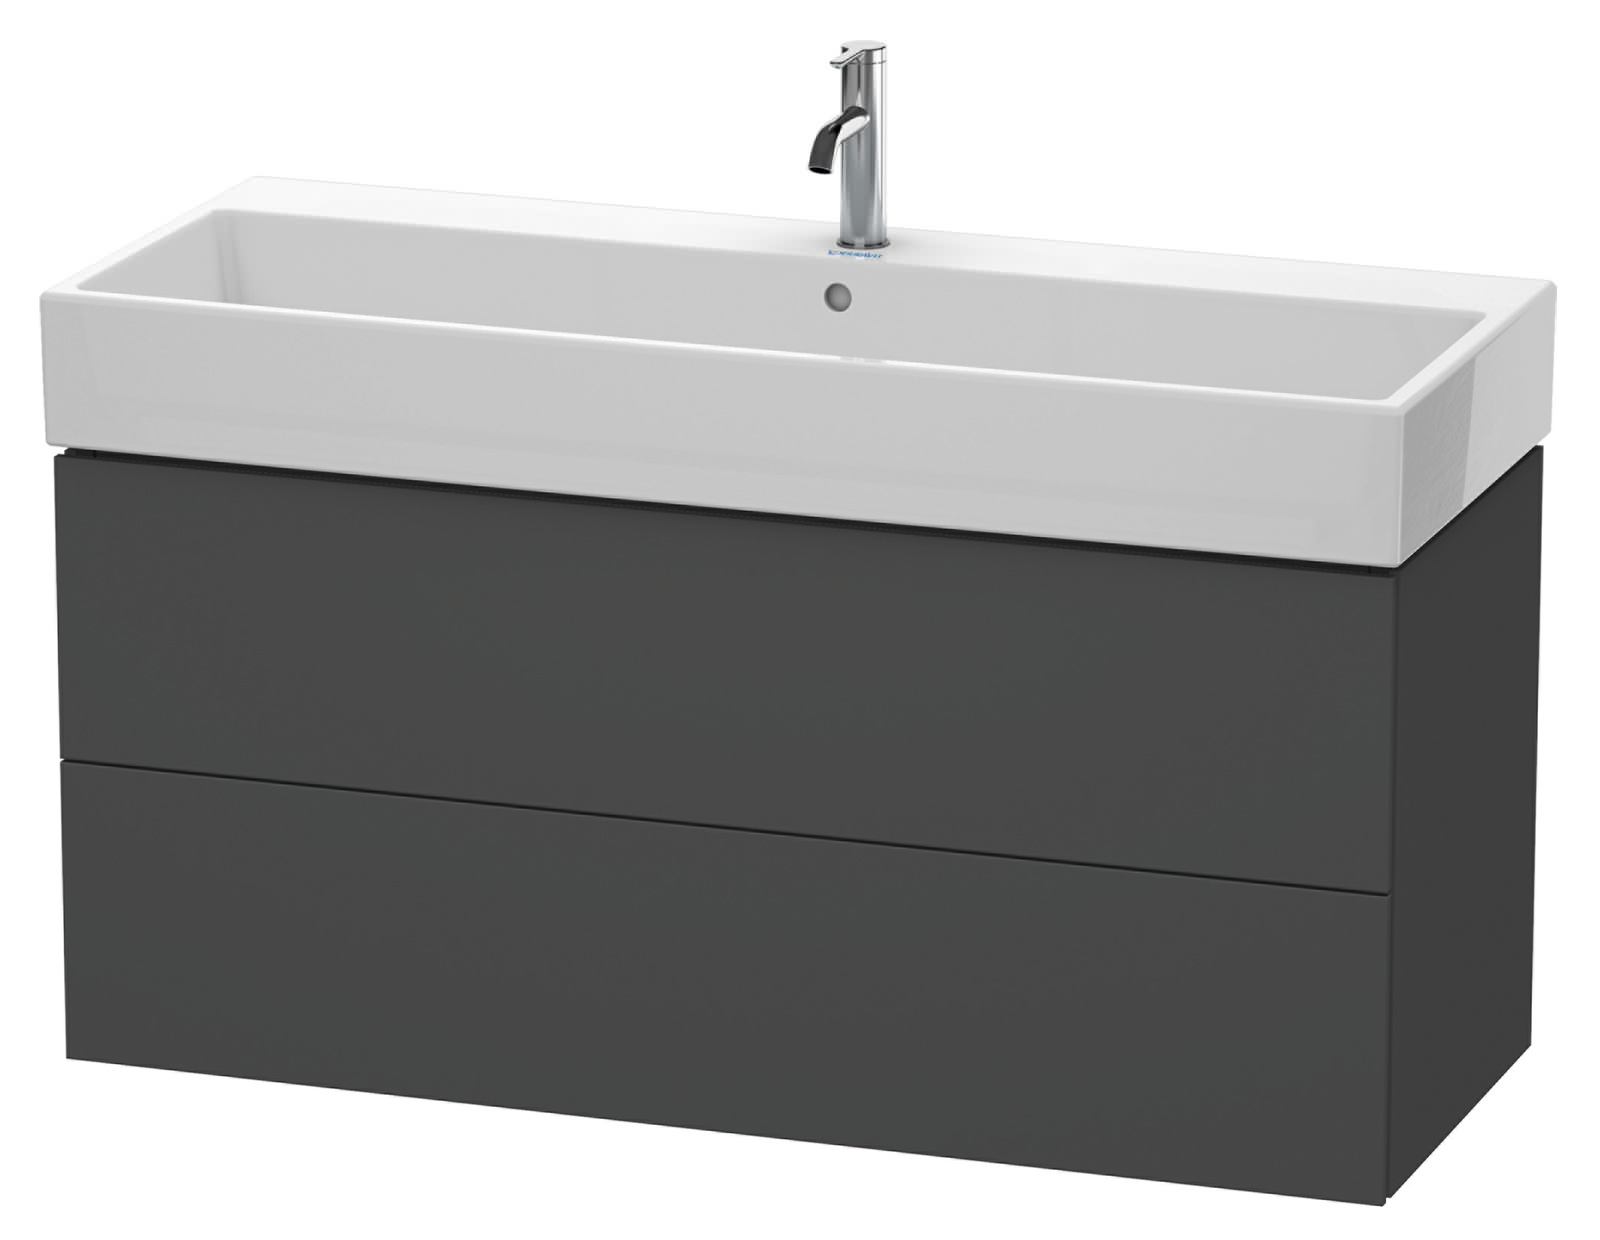 duravit l cube 1184mm 2 drawer vanity unit with vero air basin. Black Bedroom Furniture Sets. Home Design Ideas